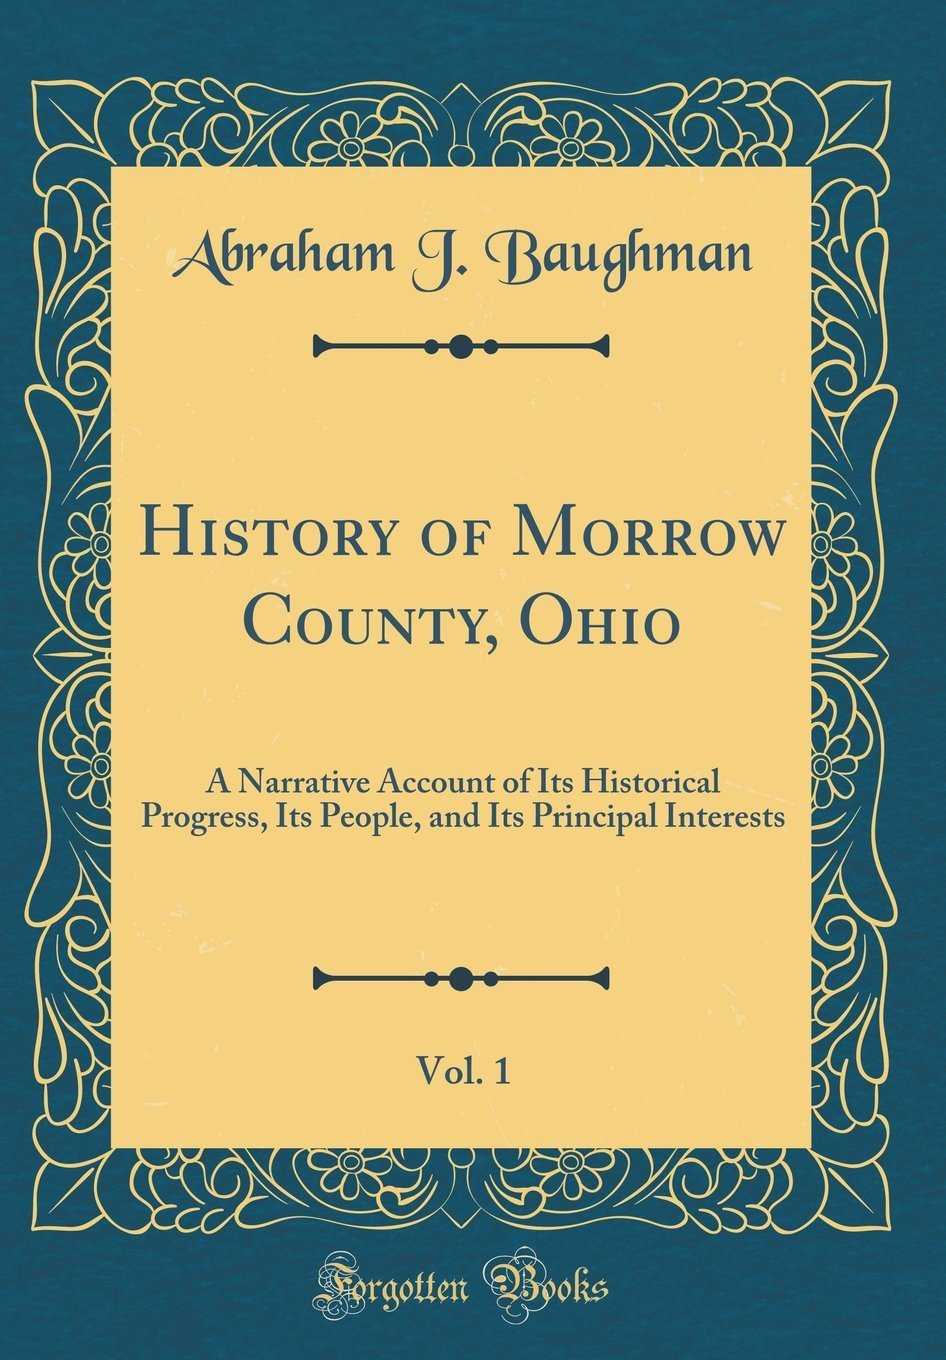 History of Morrow County, Ohio, Vol. 1: A Narrative Account of Its Historical Progress, Its People, and Its Principal Interests (Classic Reprint) PDF